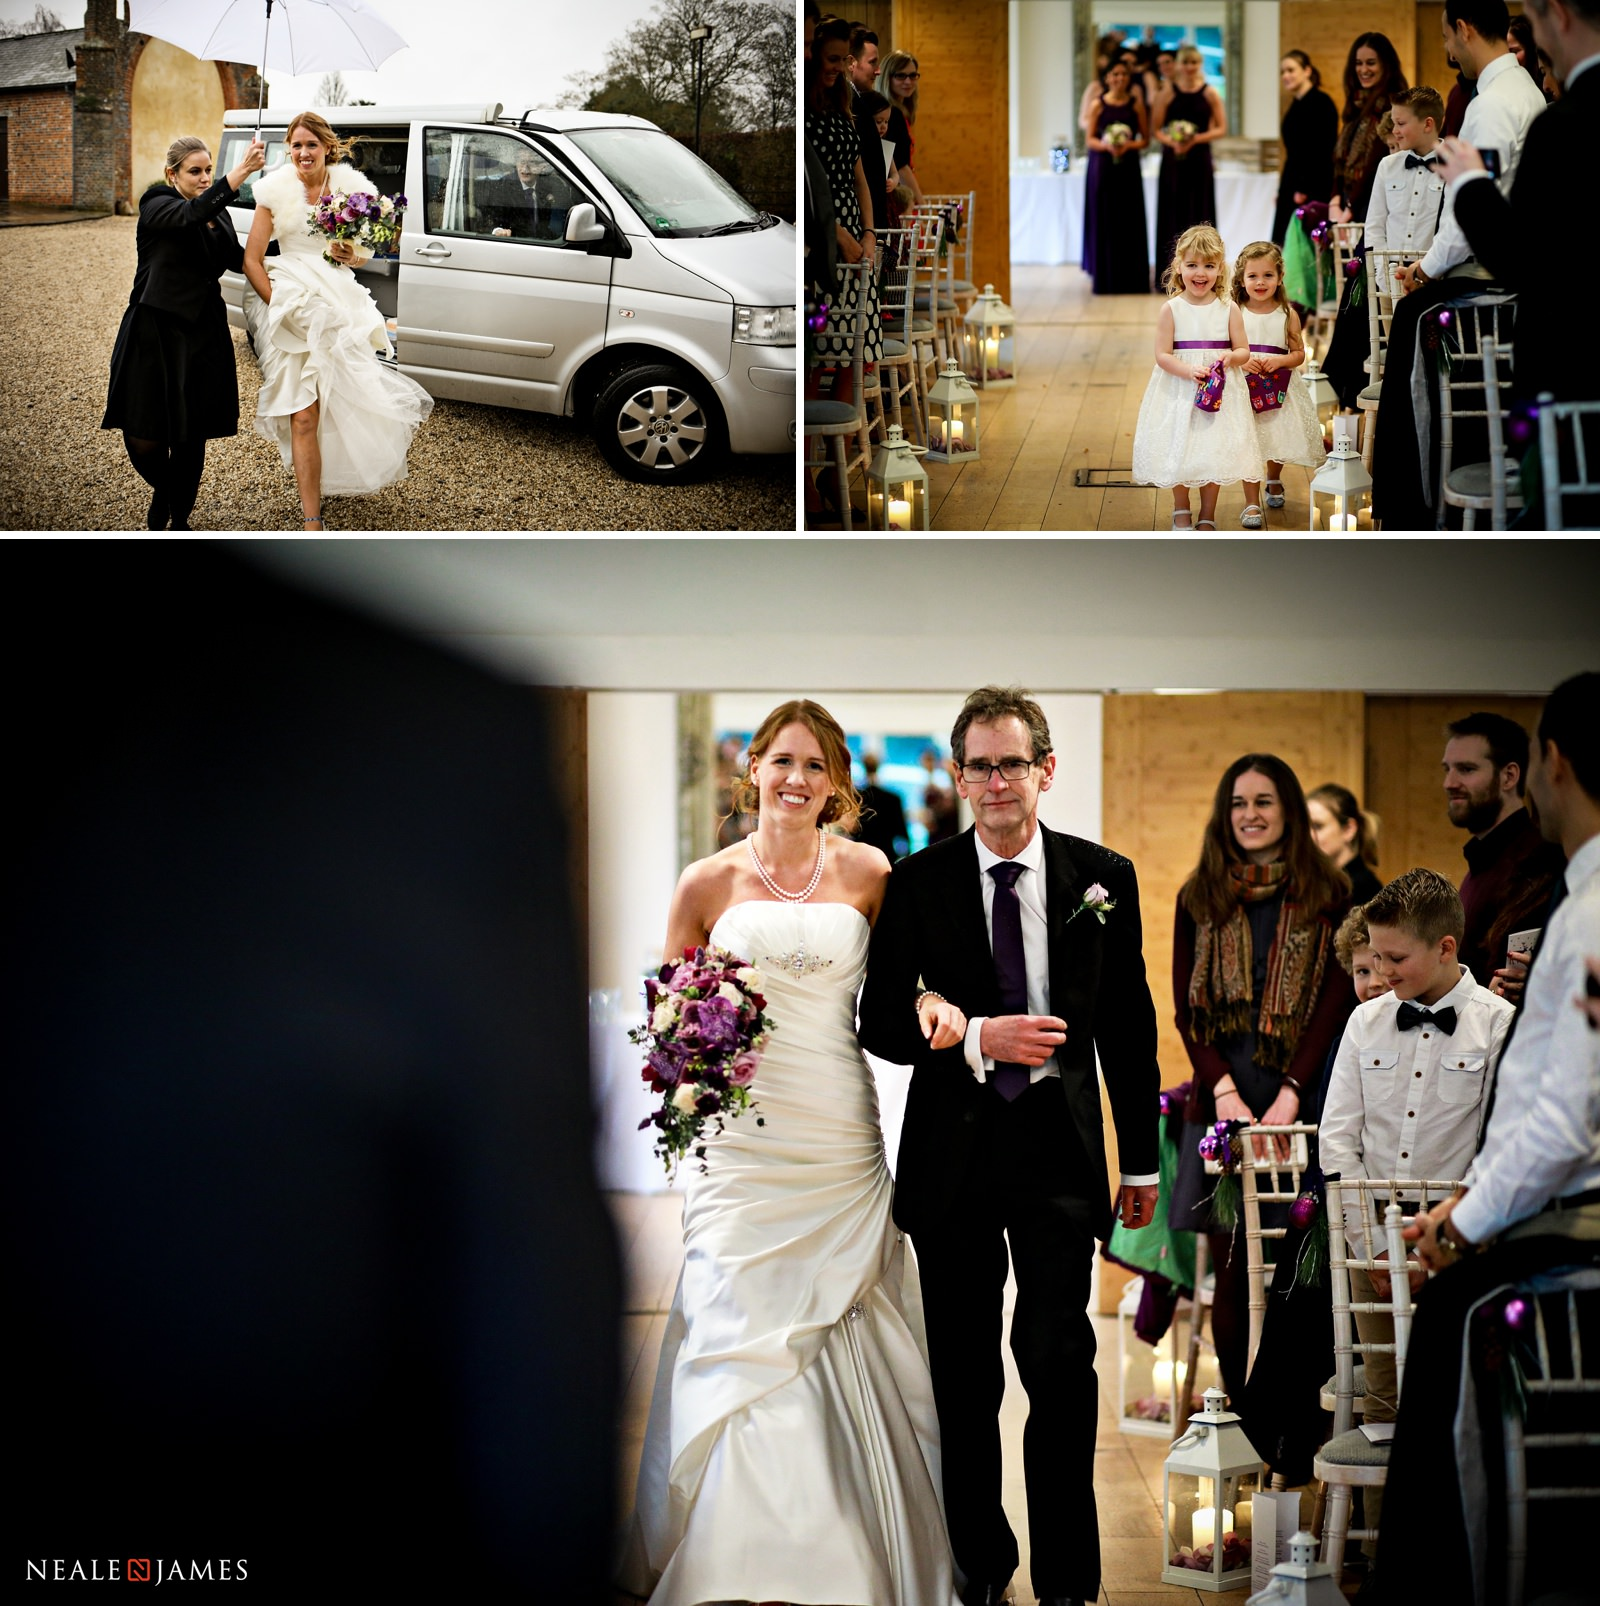 The bride arrives at the garden room in Wasing Park, where her father walks her down the ailse